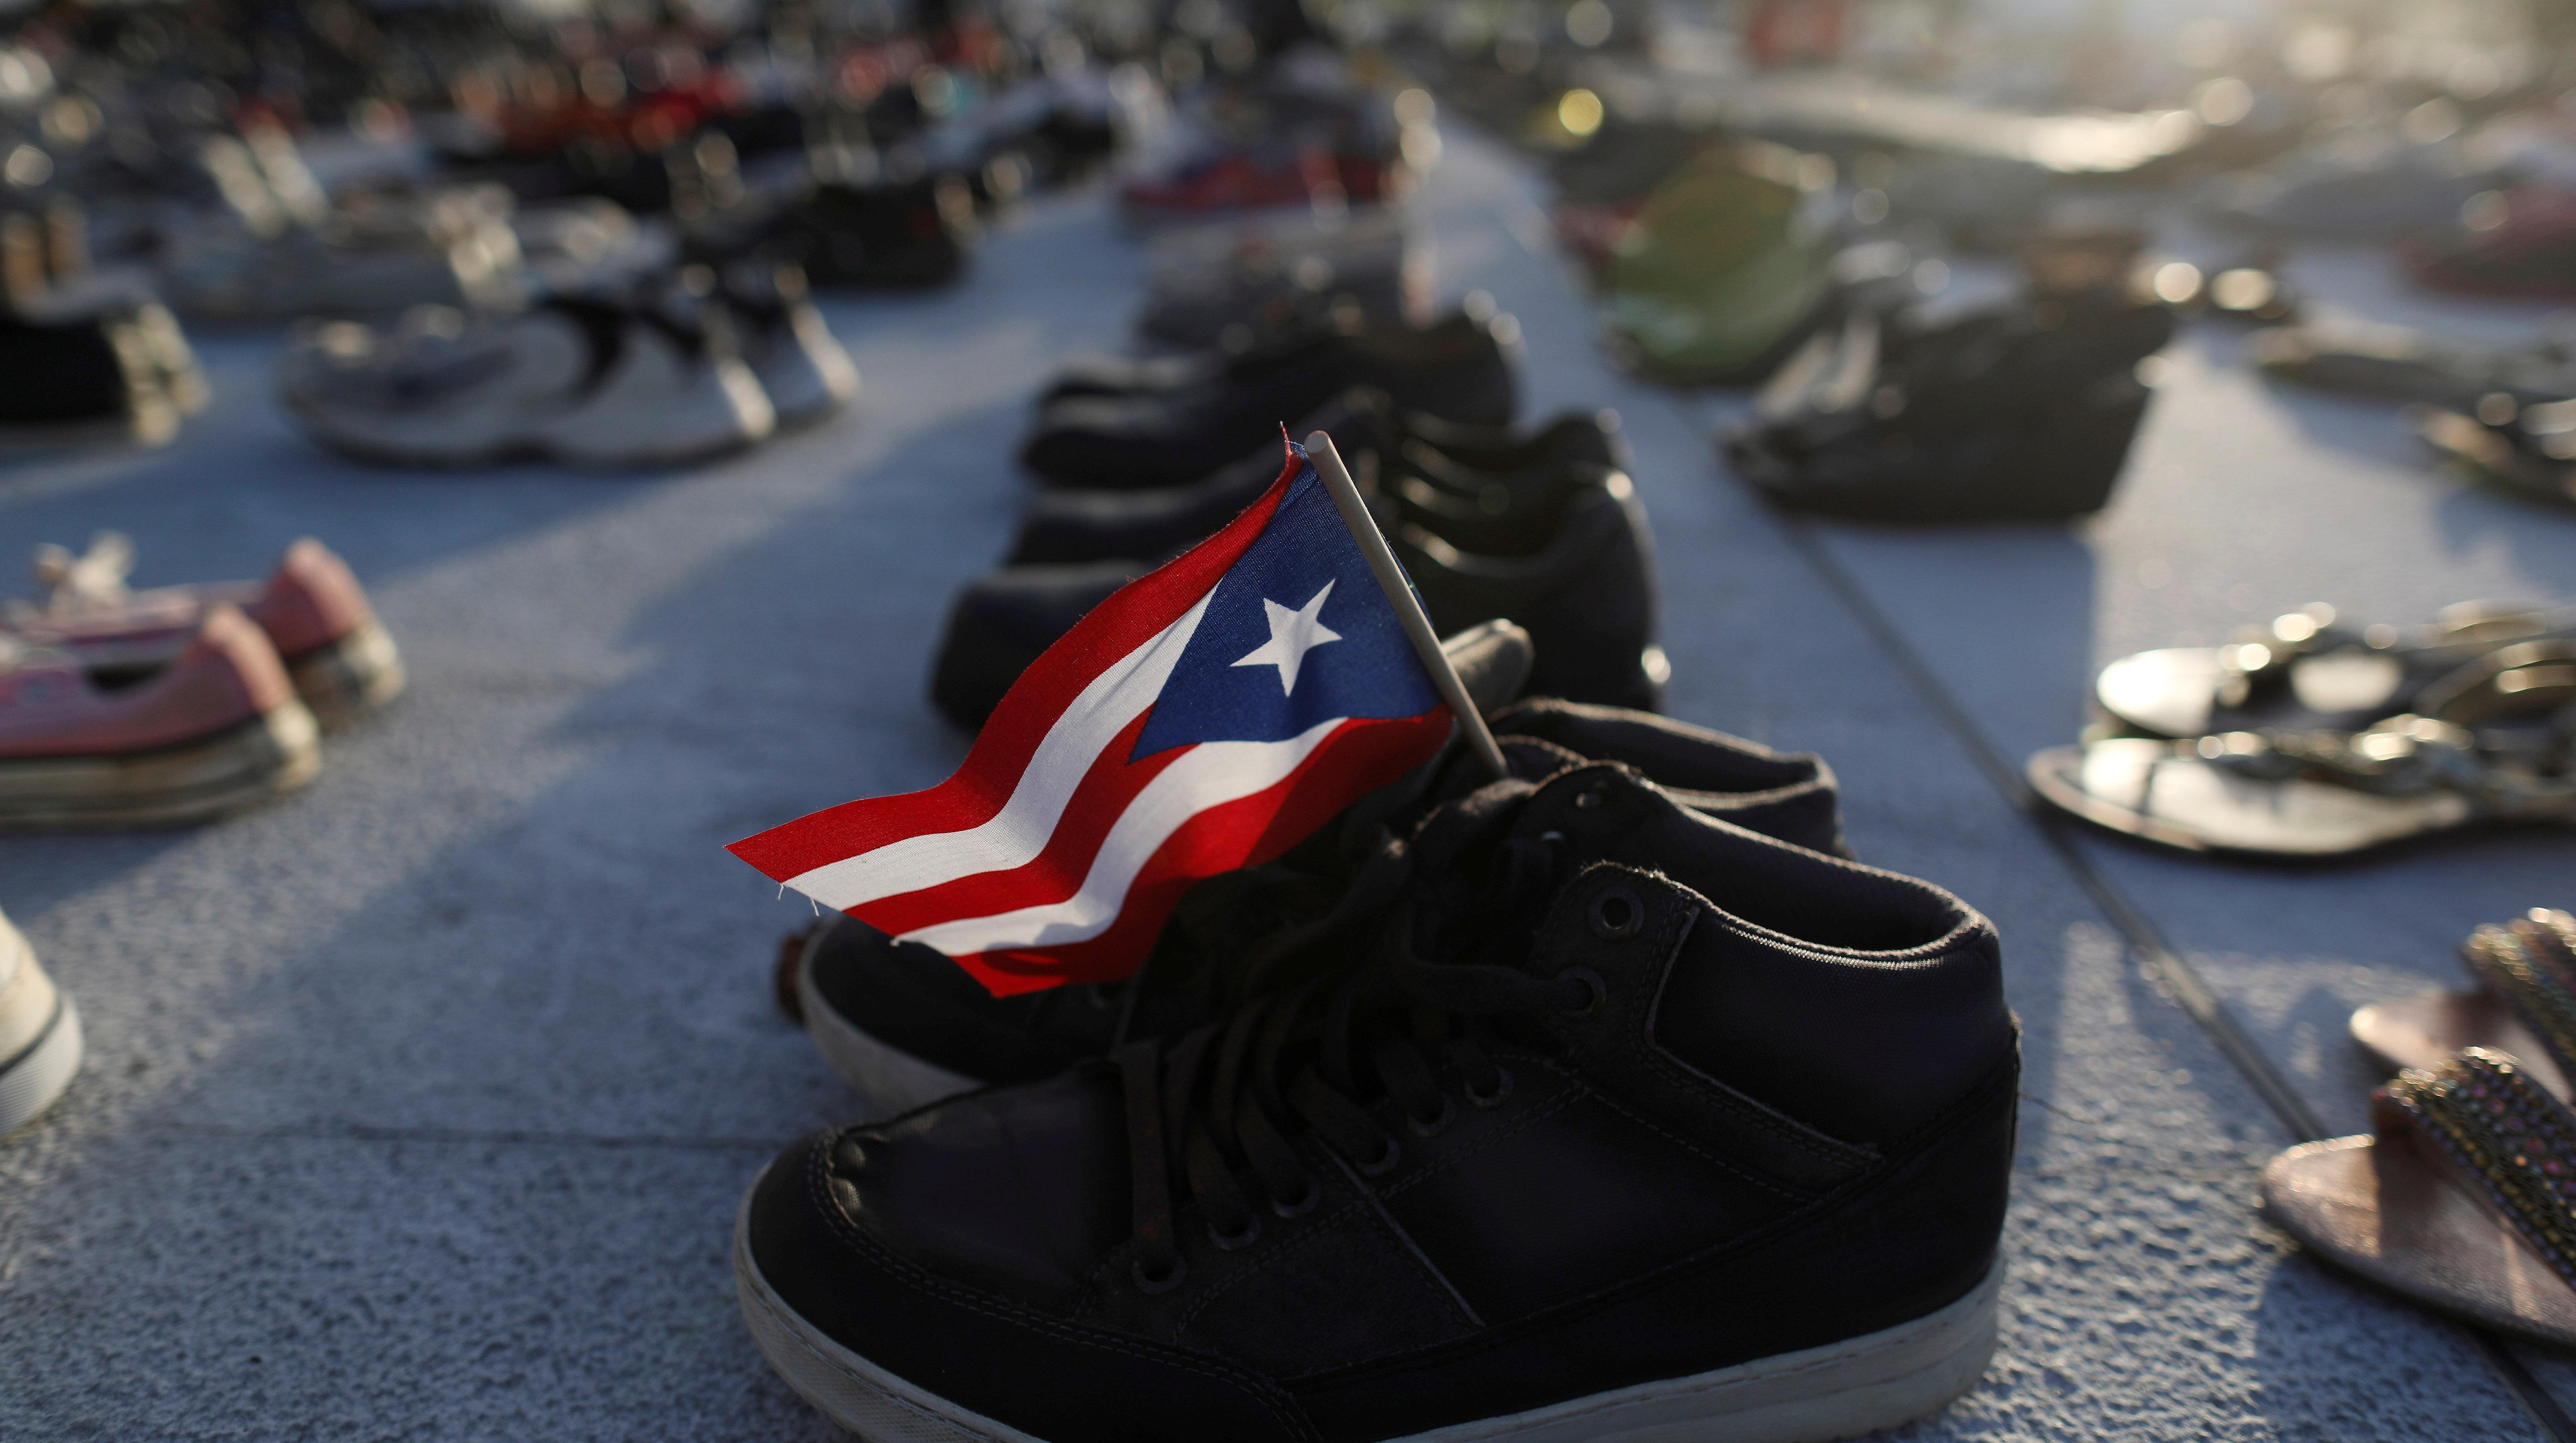 Puerto Rican Governor Raises Official Hurricane Maria Death Toll From 64 To Nearly 3,000